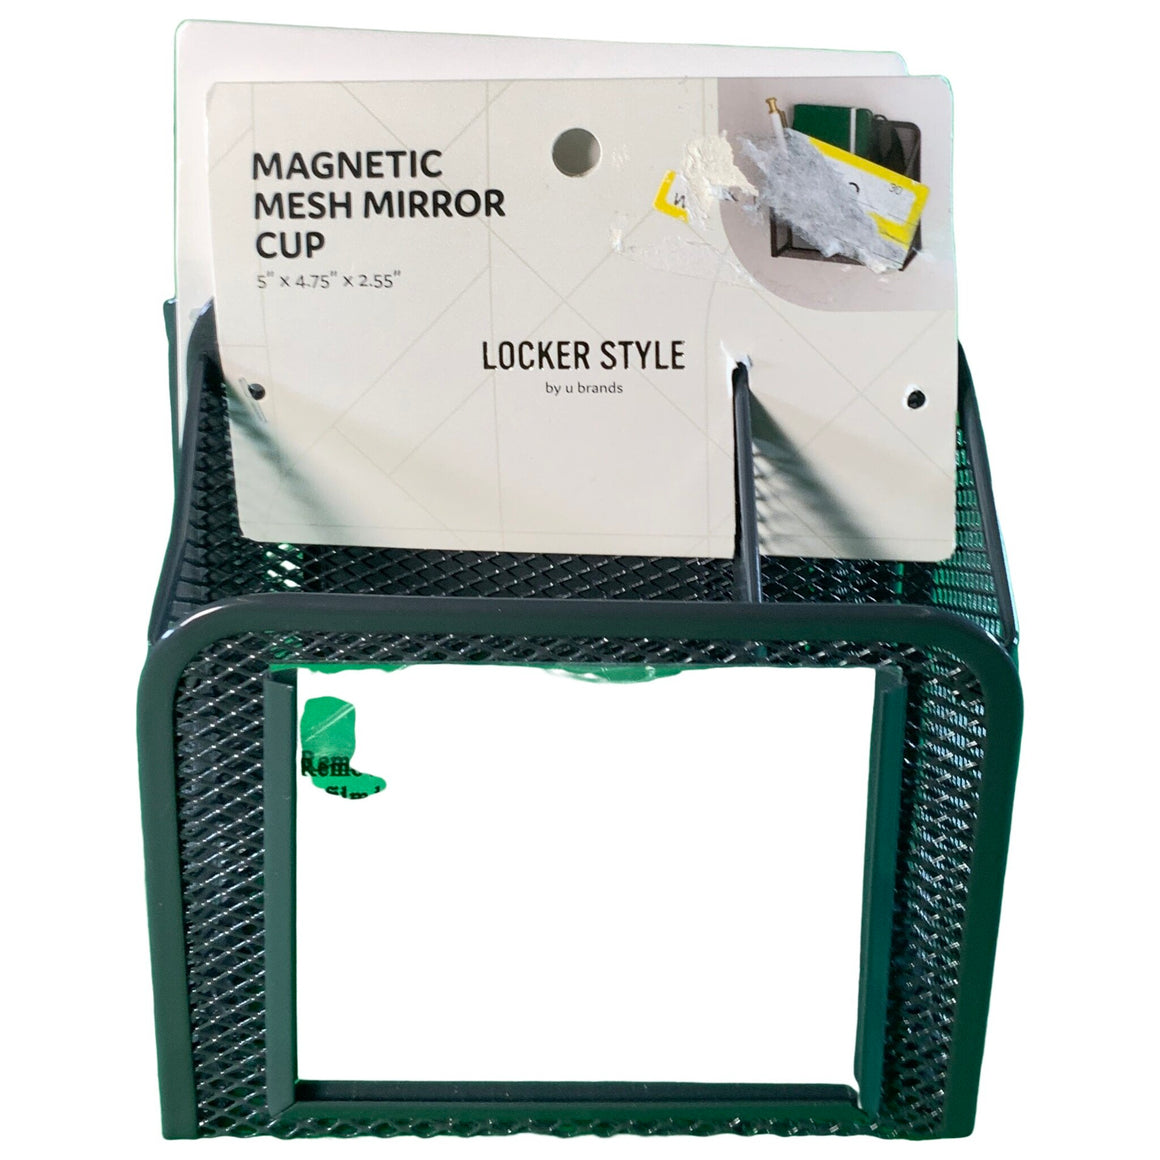 Magnetic Mesh Metal Locker Mirror Cup - Locker Style By Ubrands